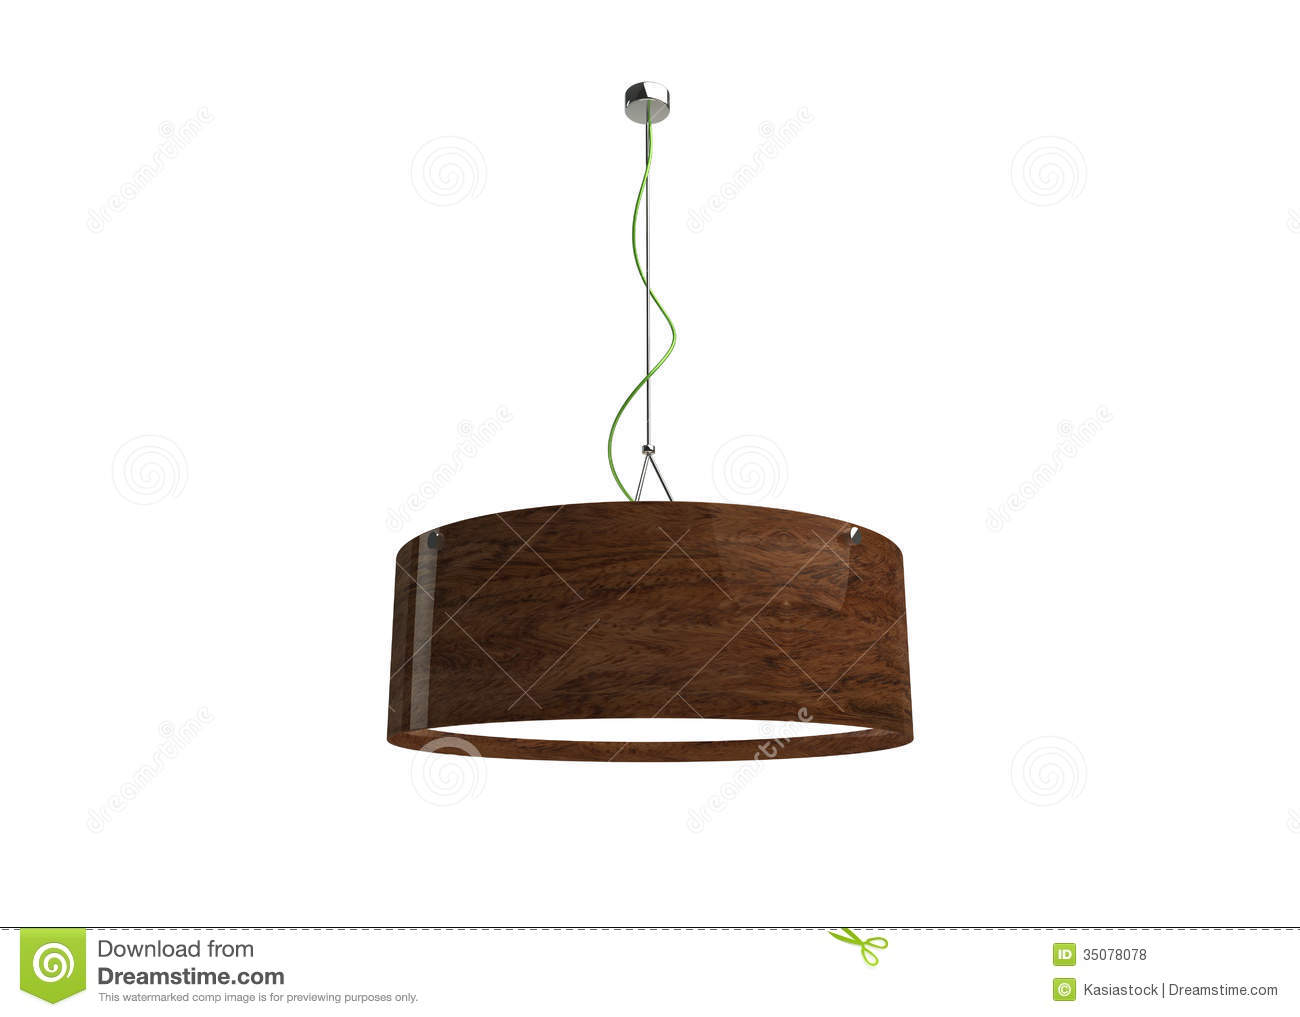 Hanging lamps that plug in - Hanging Lamp Royalty Free Stock Photos Image 35078078